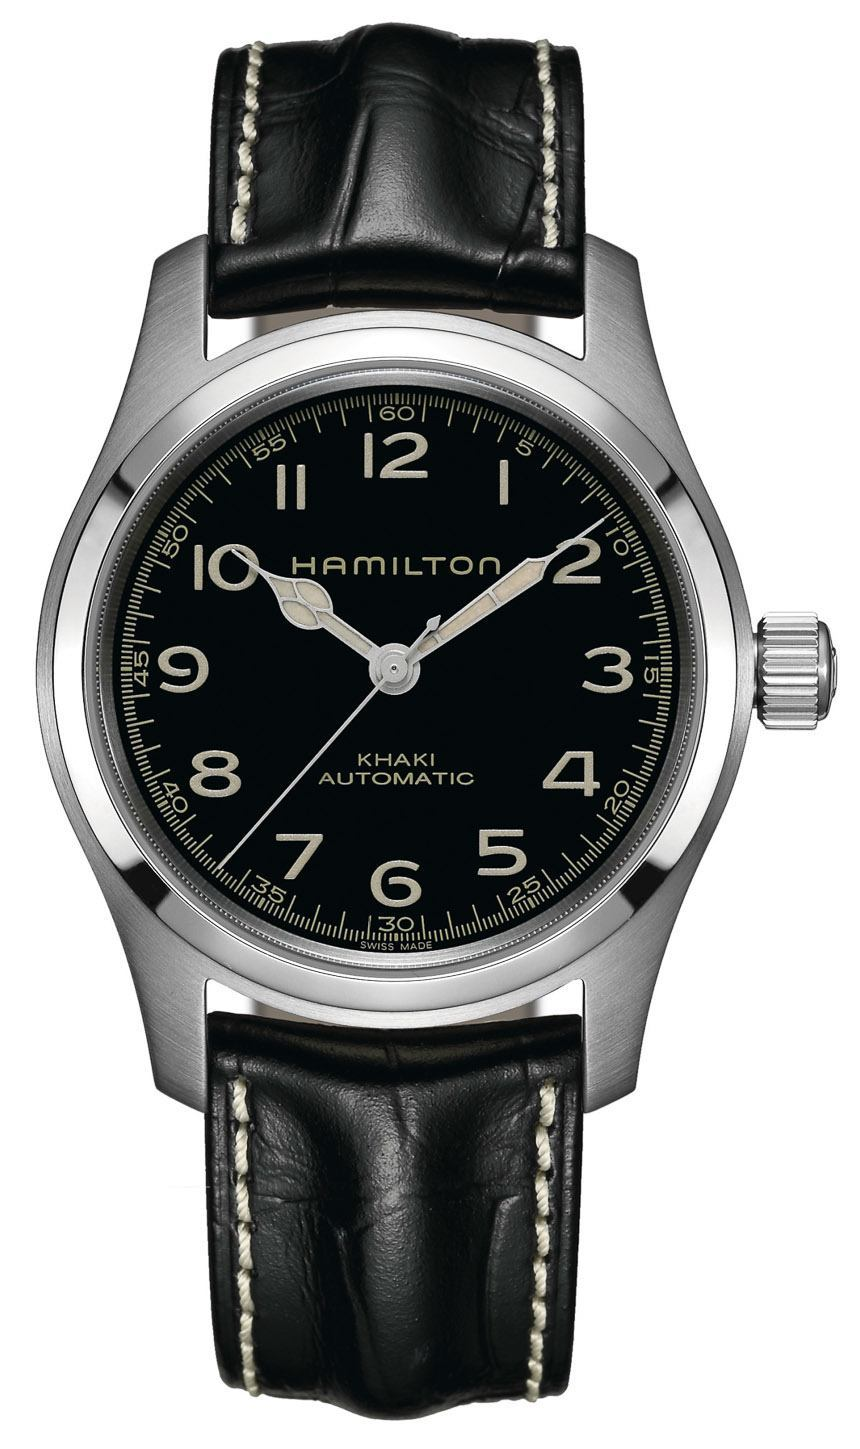 47dad8750 The Hamilton Watches From The Movie Interstellar | aBlogtoWatch